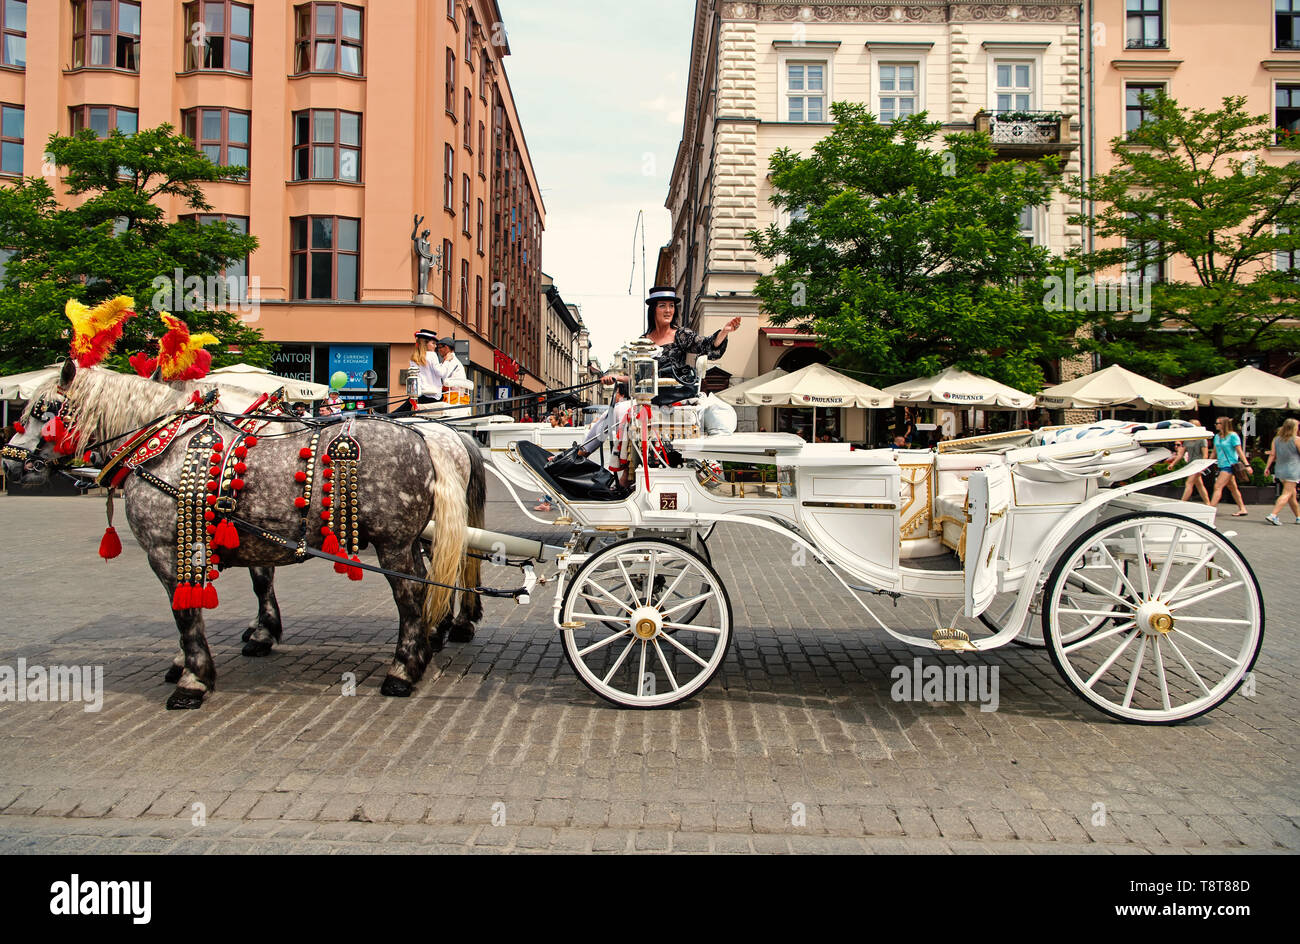 Krakow, Poland - June 04, 2016: rider woman invite tourists to horse carriage ride on city street on urban background. Vacation, tour, travelling, discovery concept. - Stock Image